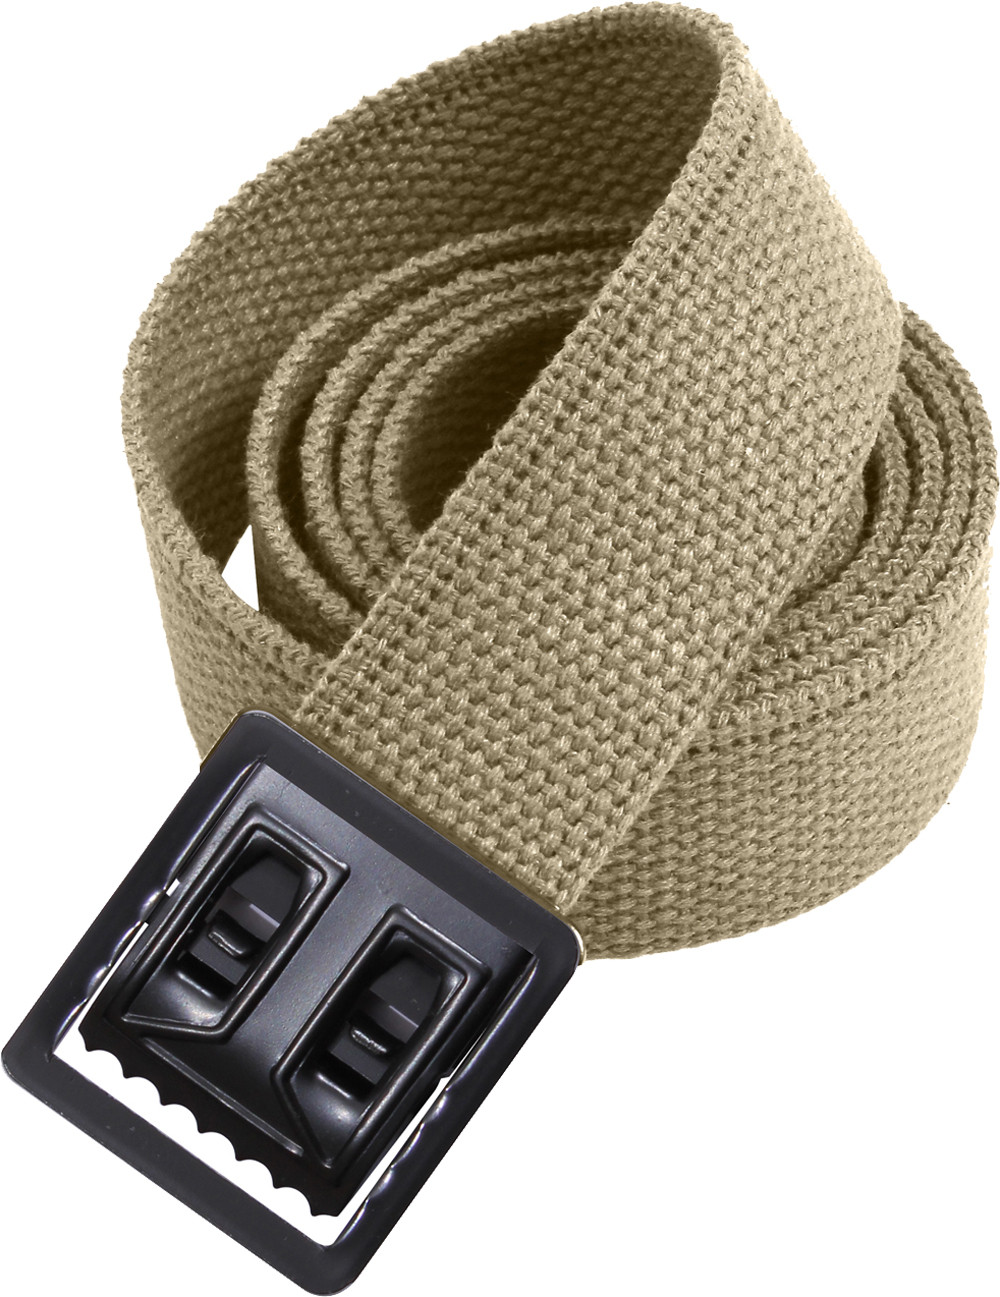 Khaki Military Web Belt   Black Open Face Buckle 72620982676